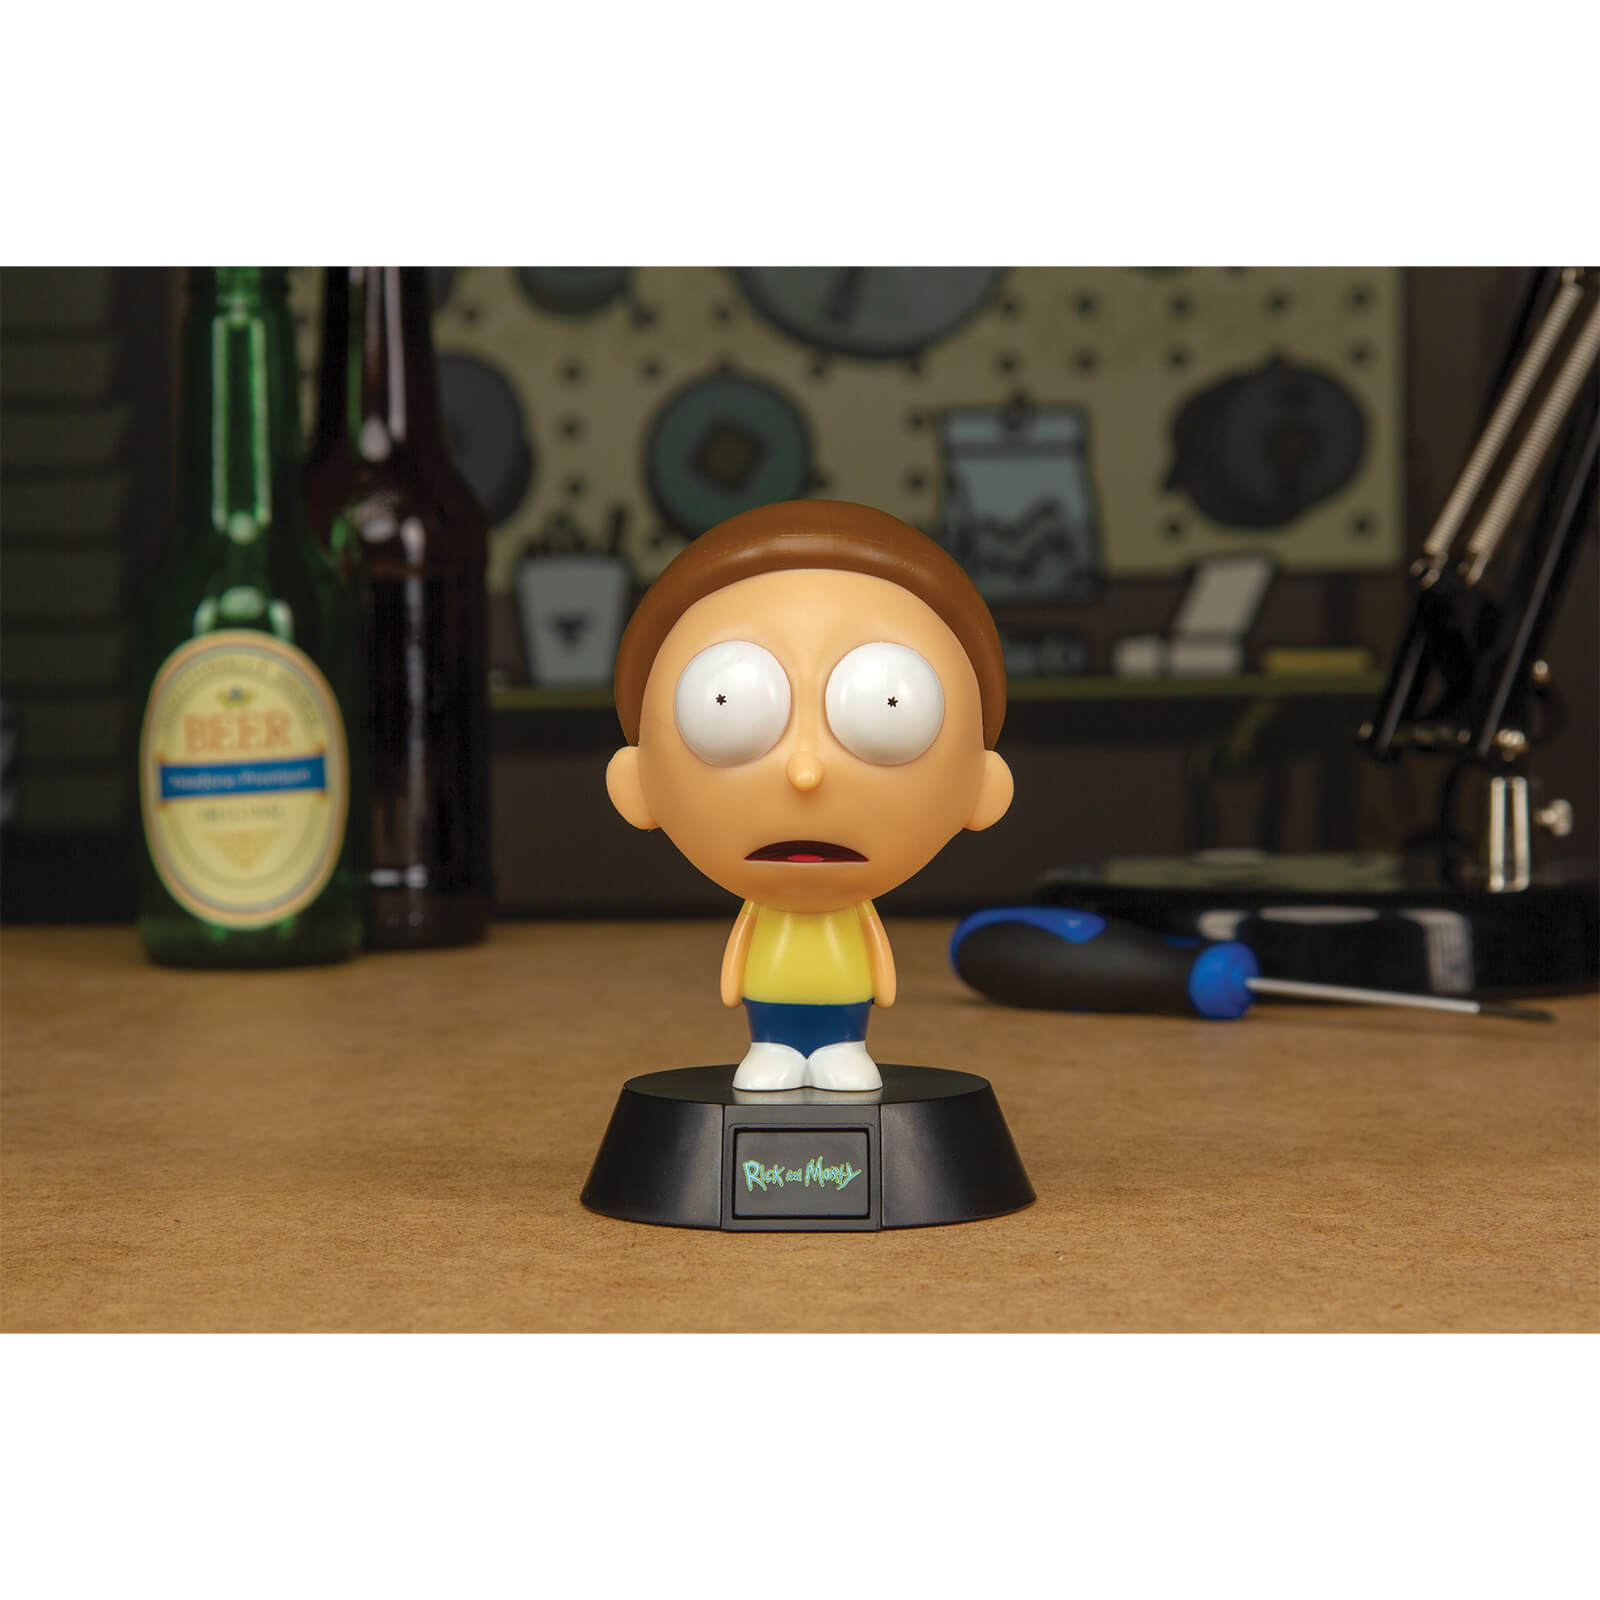 Image of Rick and Morty Morty Icon Light